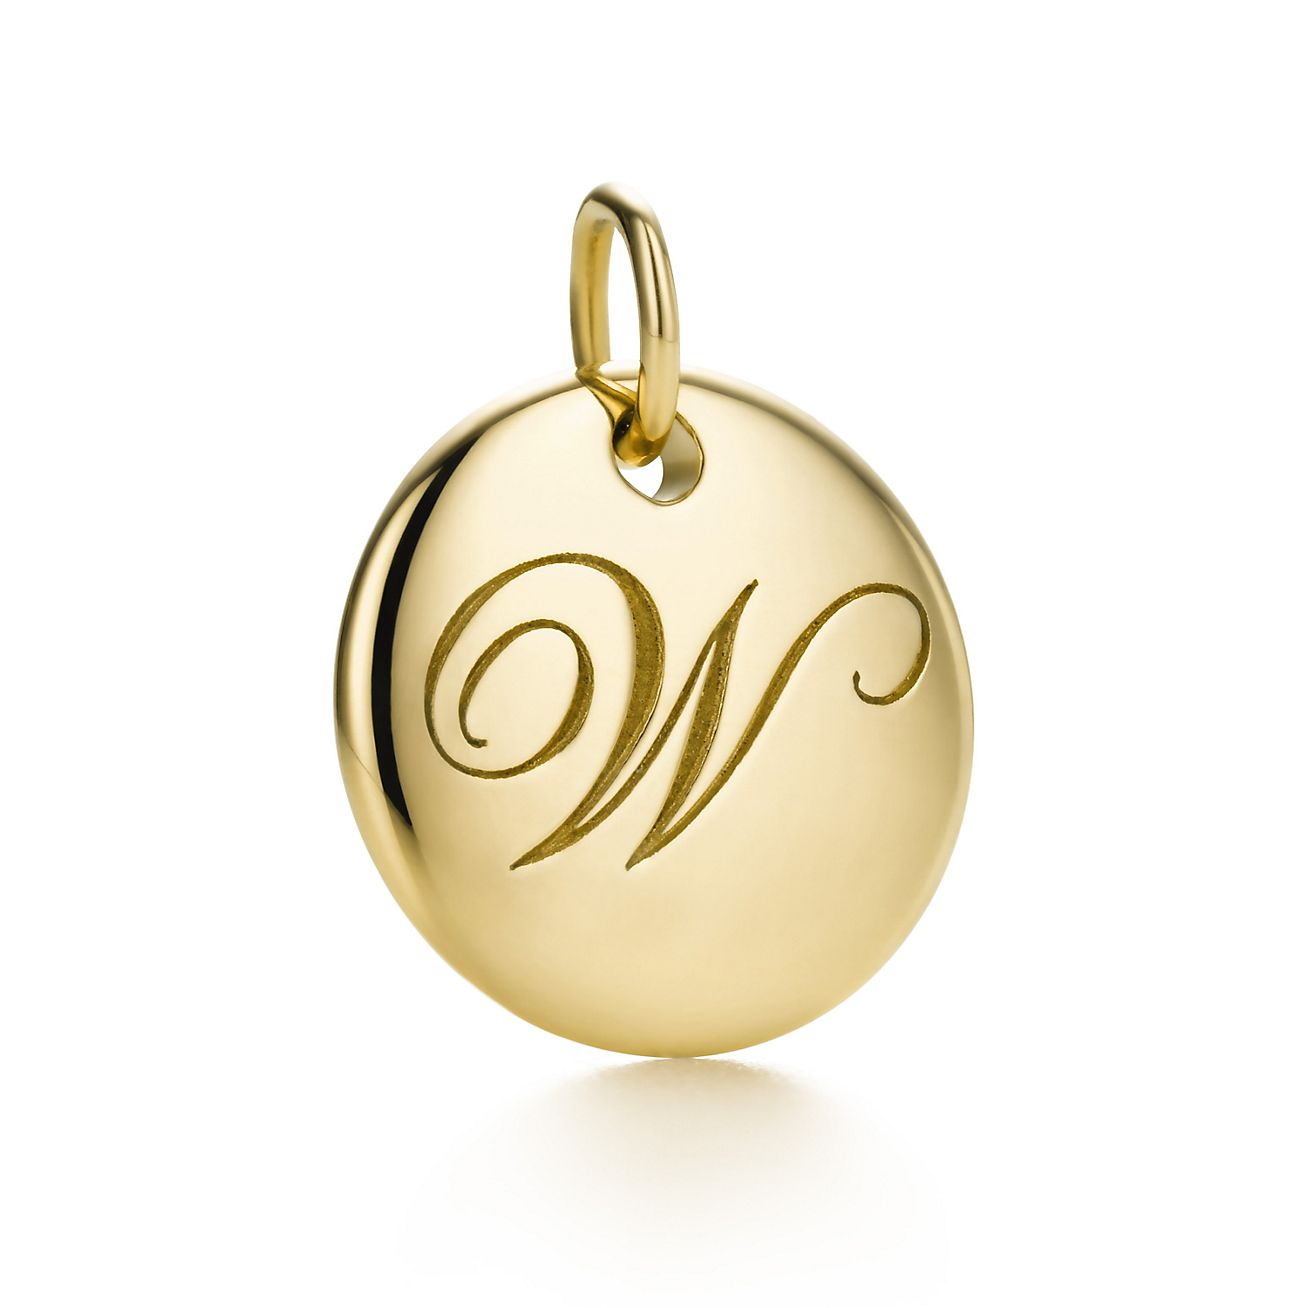 Tiffany Notes alphabet disc charm in 18k gold, small Letters A-Z available - Size W Tiffany & Co.